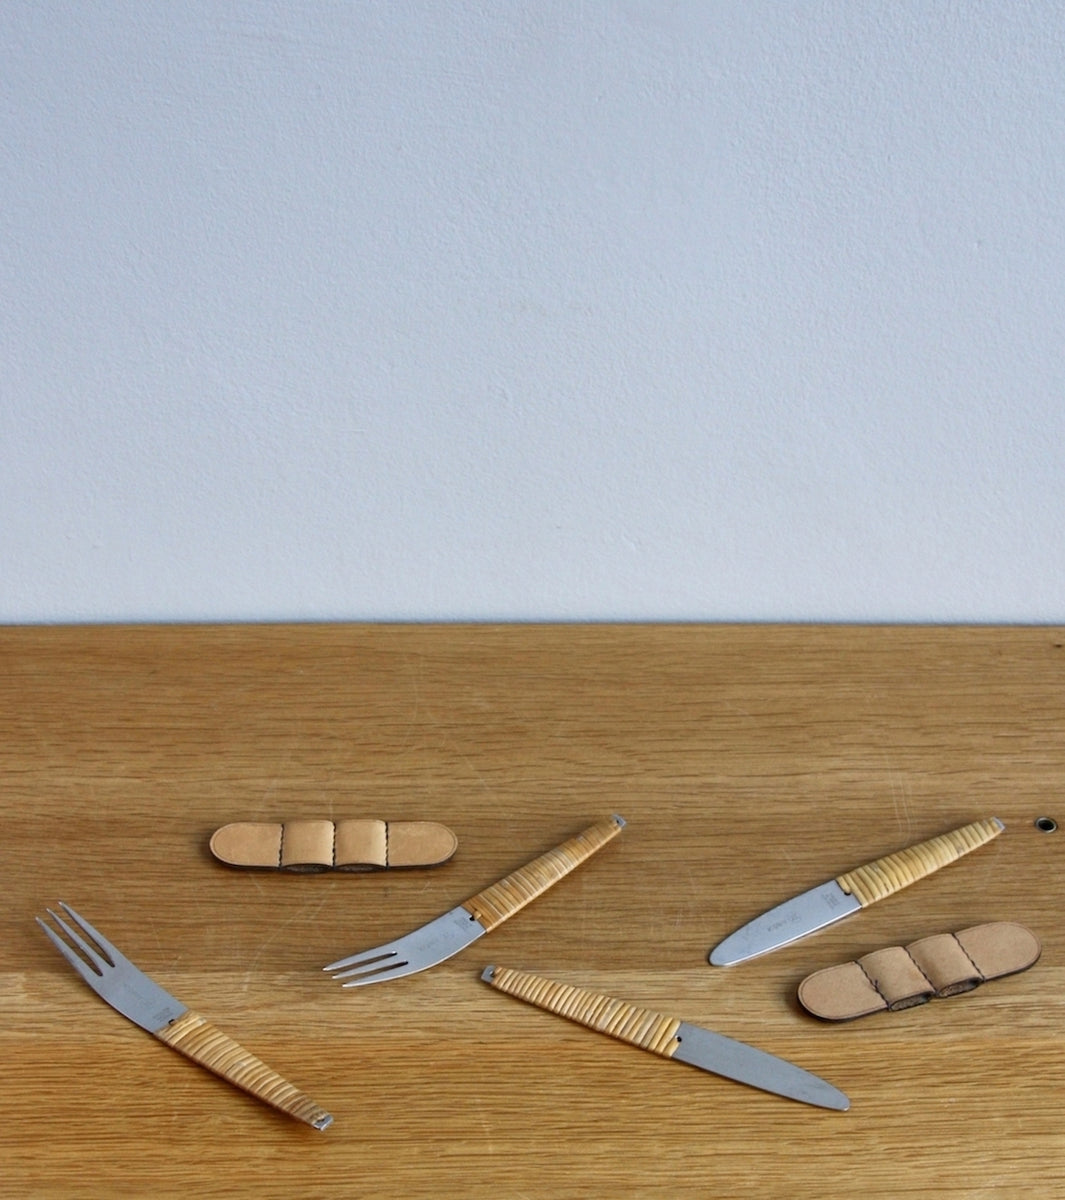 Two Sets of Stainless Steel Knives & Forks, Carl Auböck